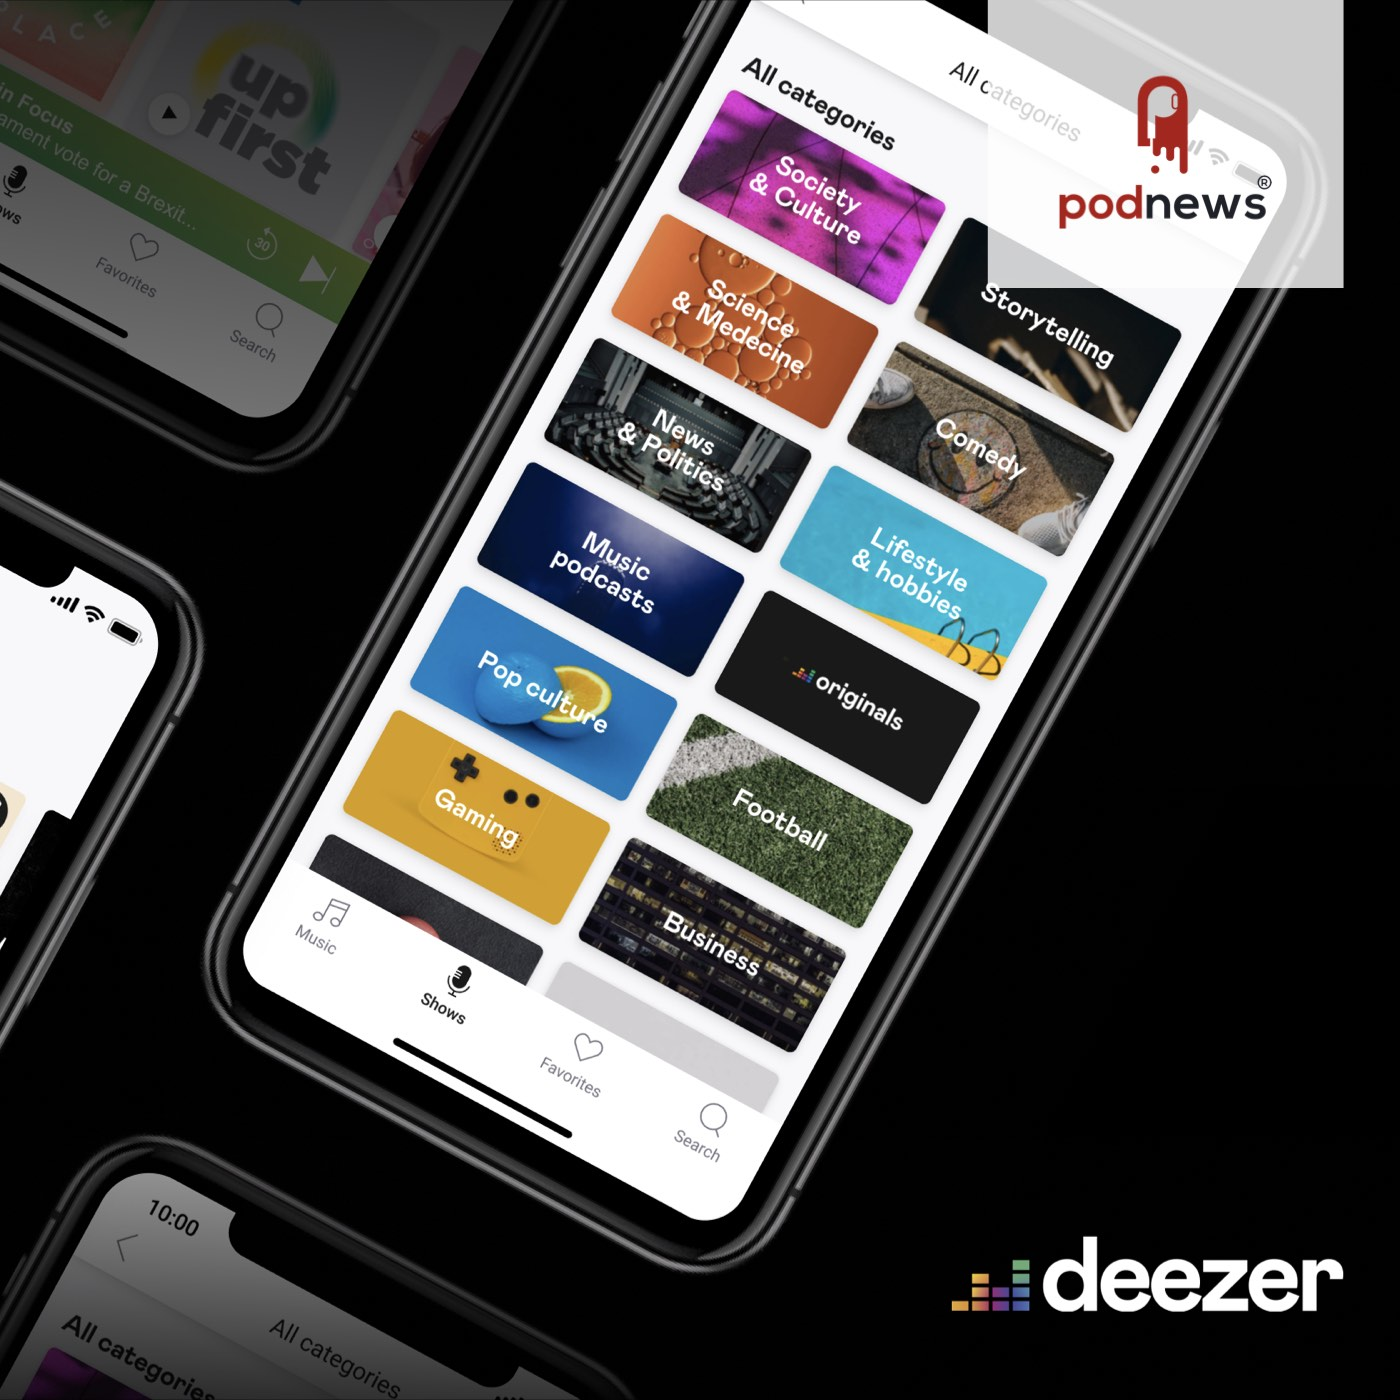 Podcasting on Deezer shows up in another 51 countries